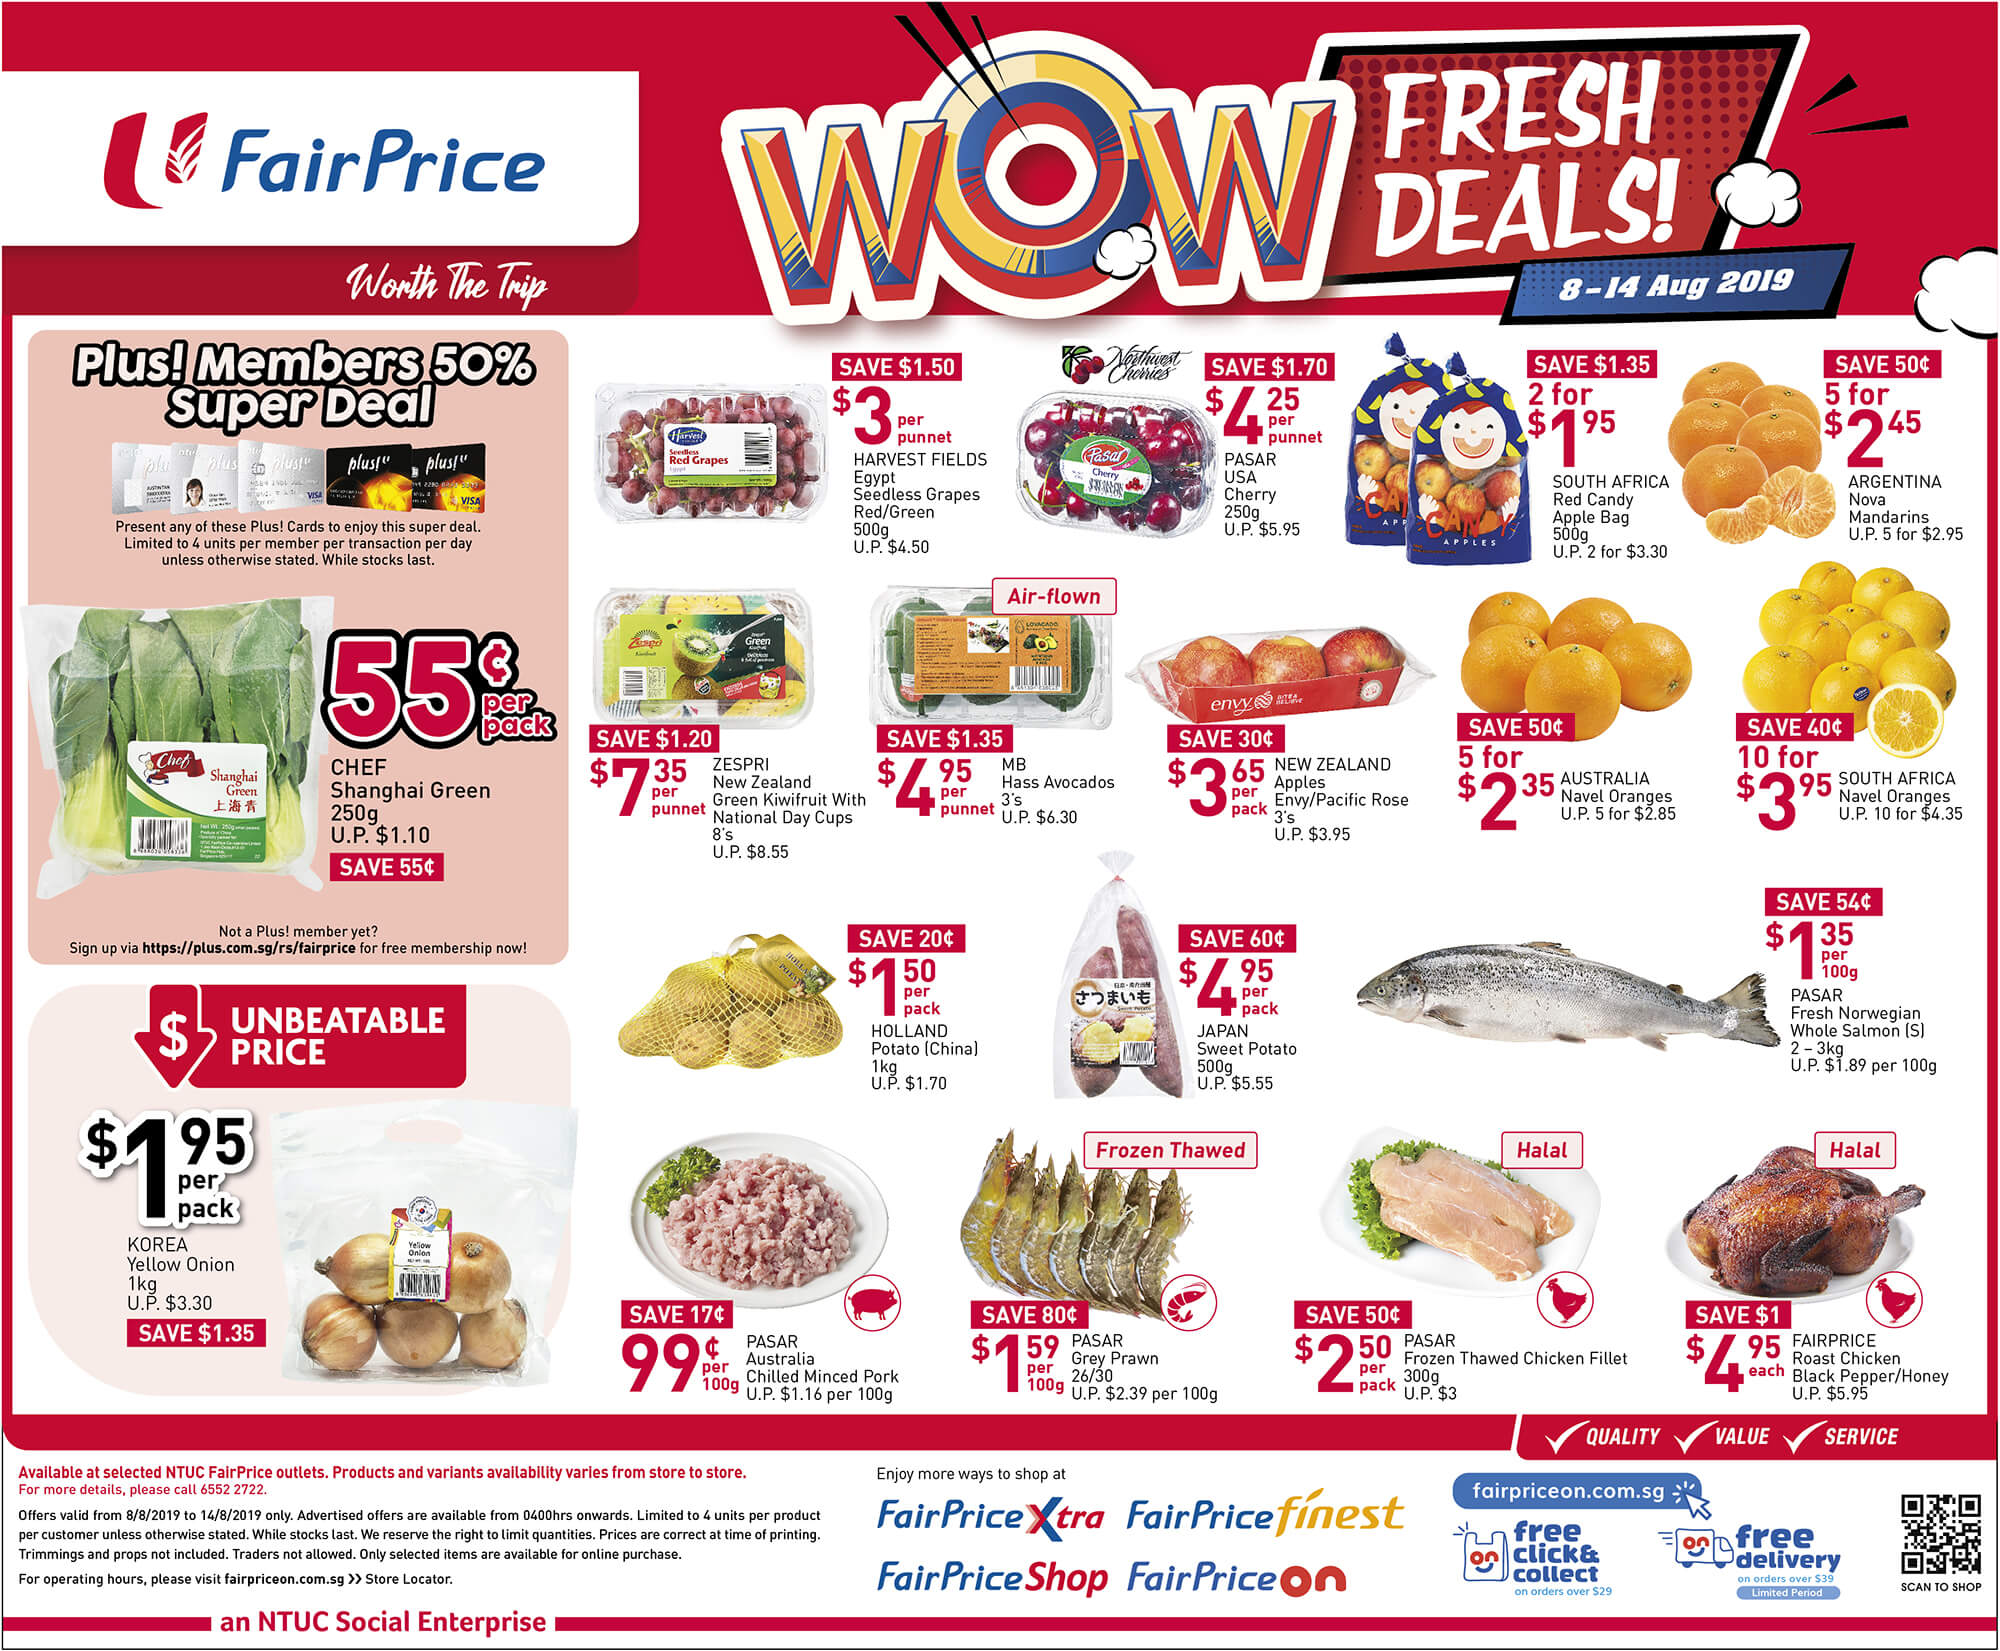 NTUC FairPrice Singapore Your Weekly Saver Promotion 8-14 Aug 2019   Why Not Deals 4 & Promotions